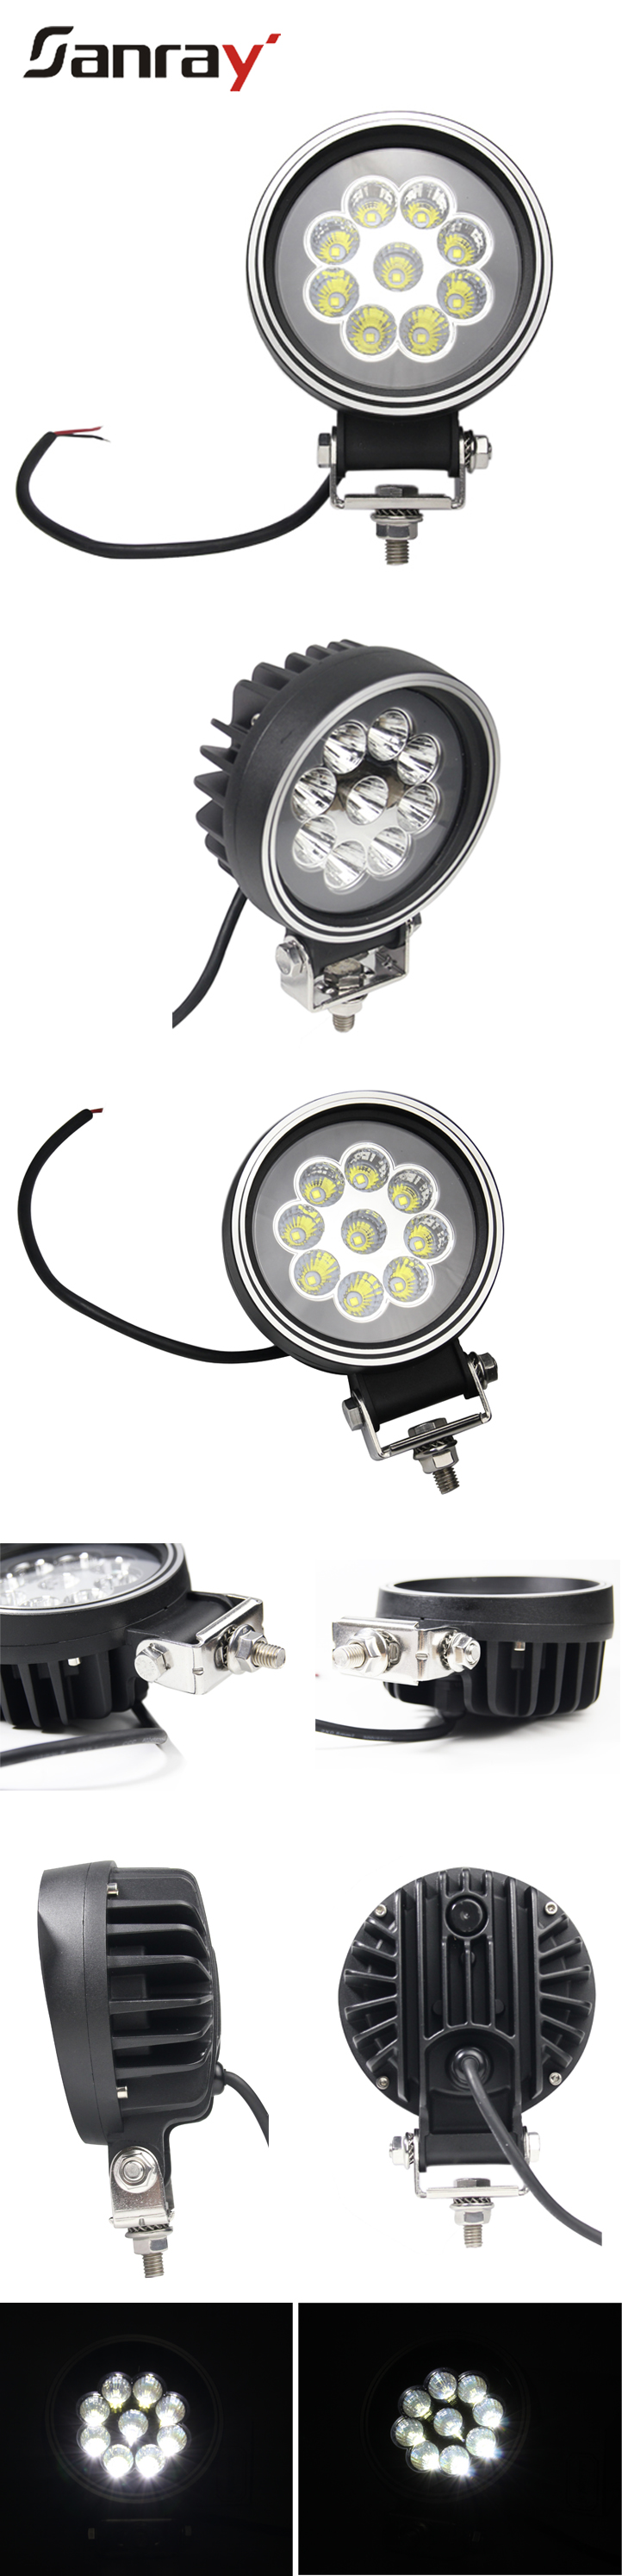 Heavy Machinery vechine newest 45w headlight spot/flood beam led work light for truck tractor agriculture mining vehicles